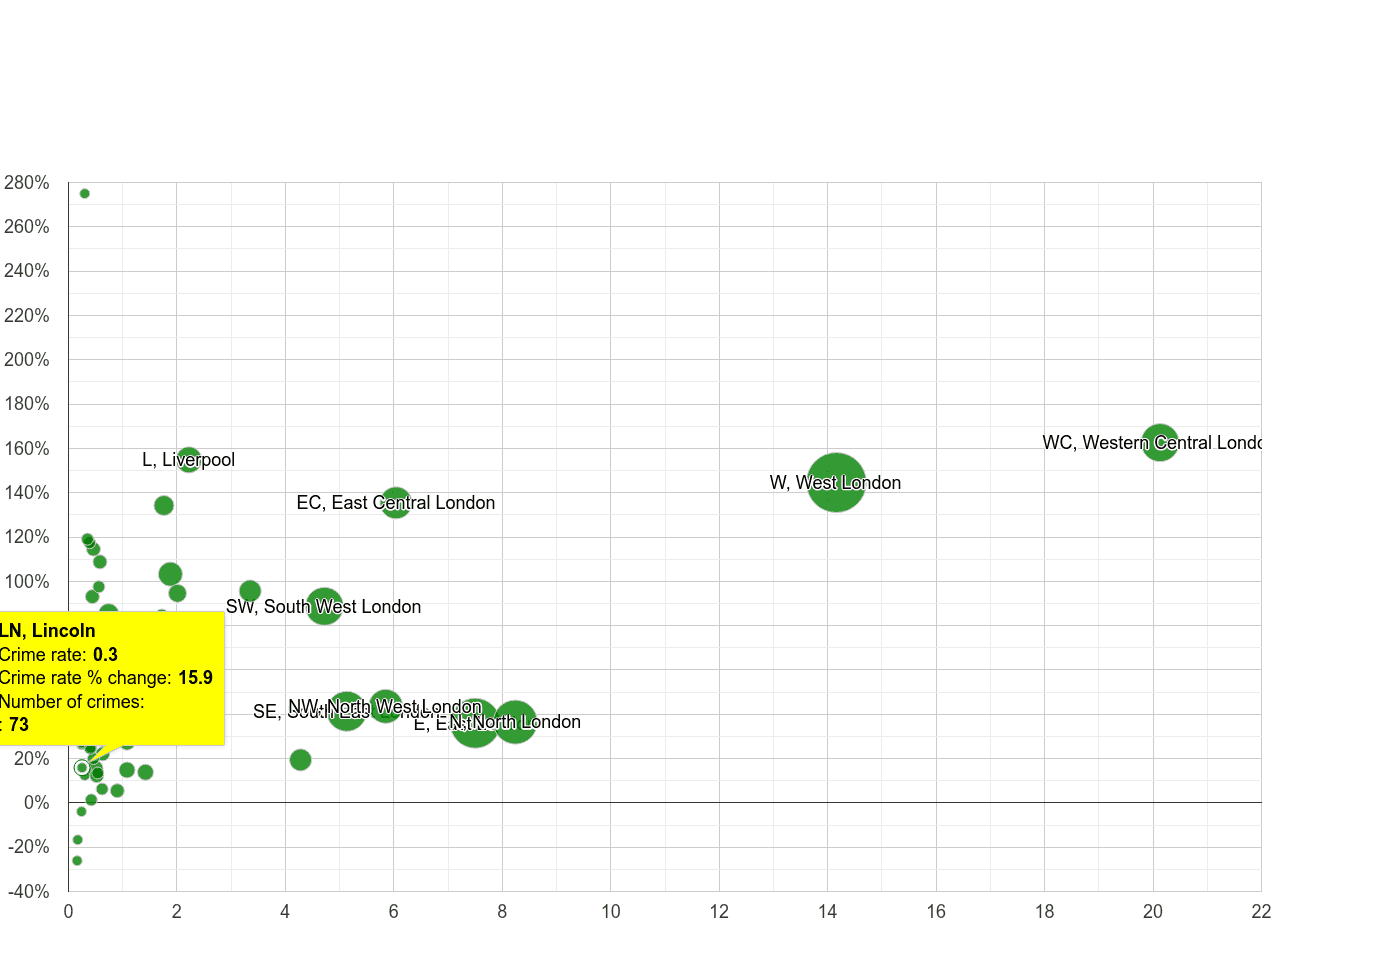 Lincoln theft from the person crime rate compared to other areas